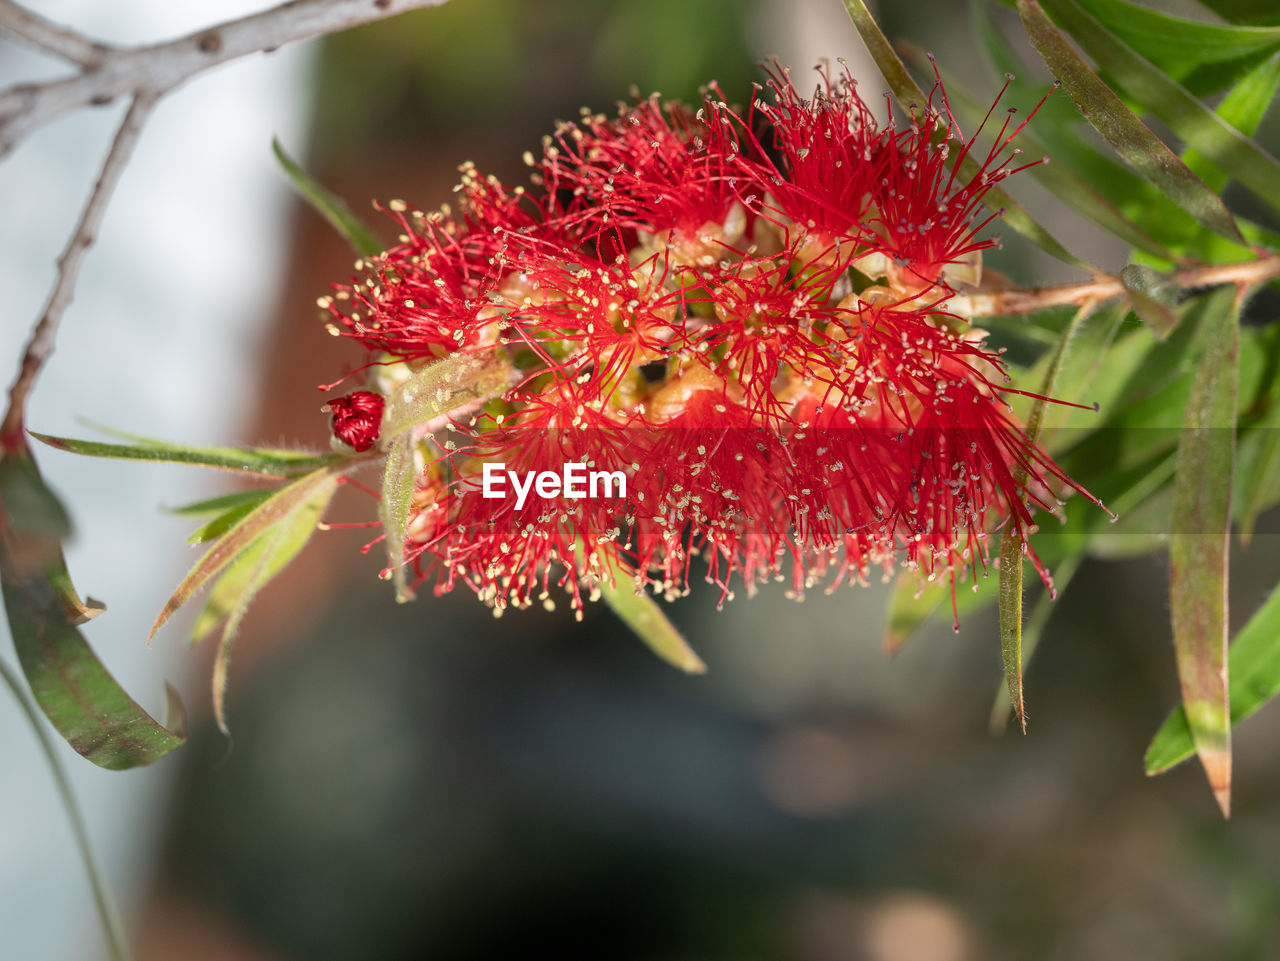 plant, red, growth, close-up, beauty in nature, focus on foreground, no people, nature, freshness, day, vulnerability, fragility, flower, flowering plant, plant part, selective focus, petal, leaf, food and drink, outdoors, pollen, flower head